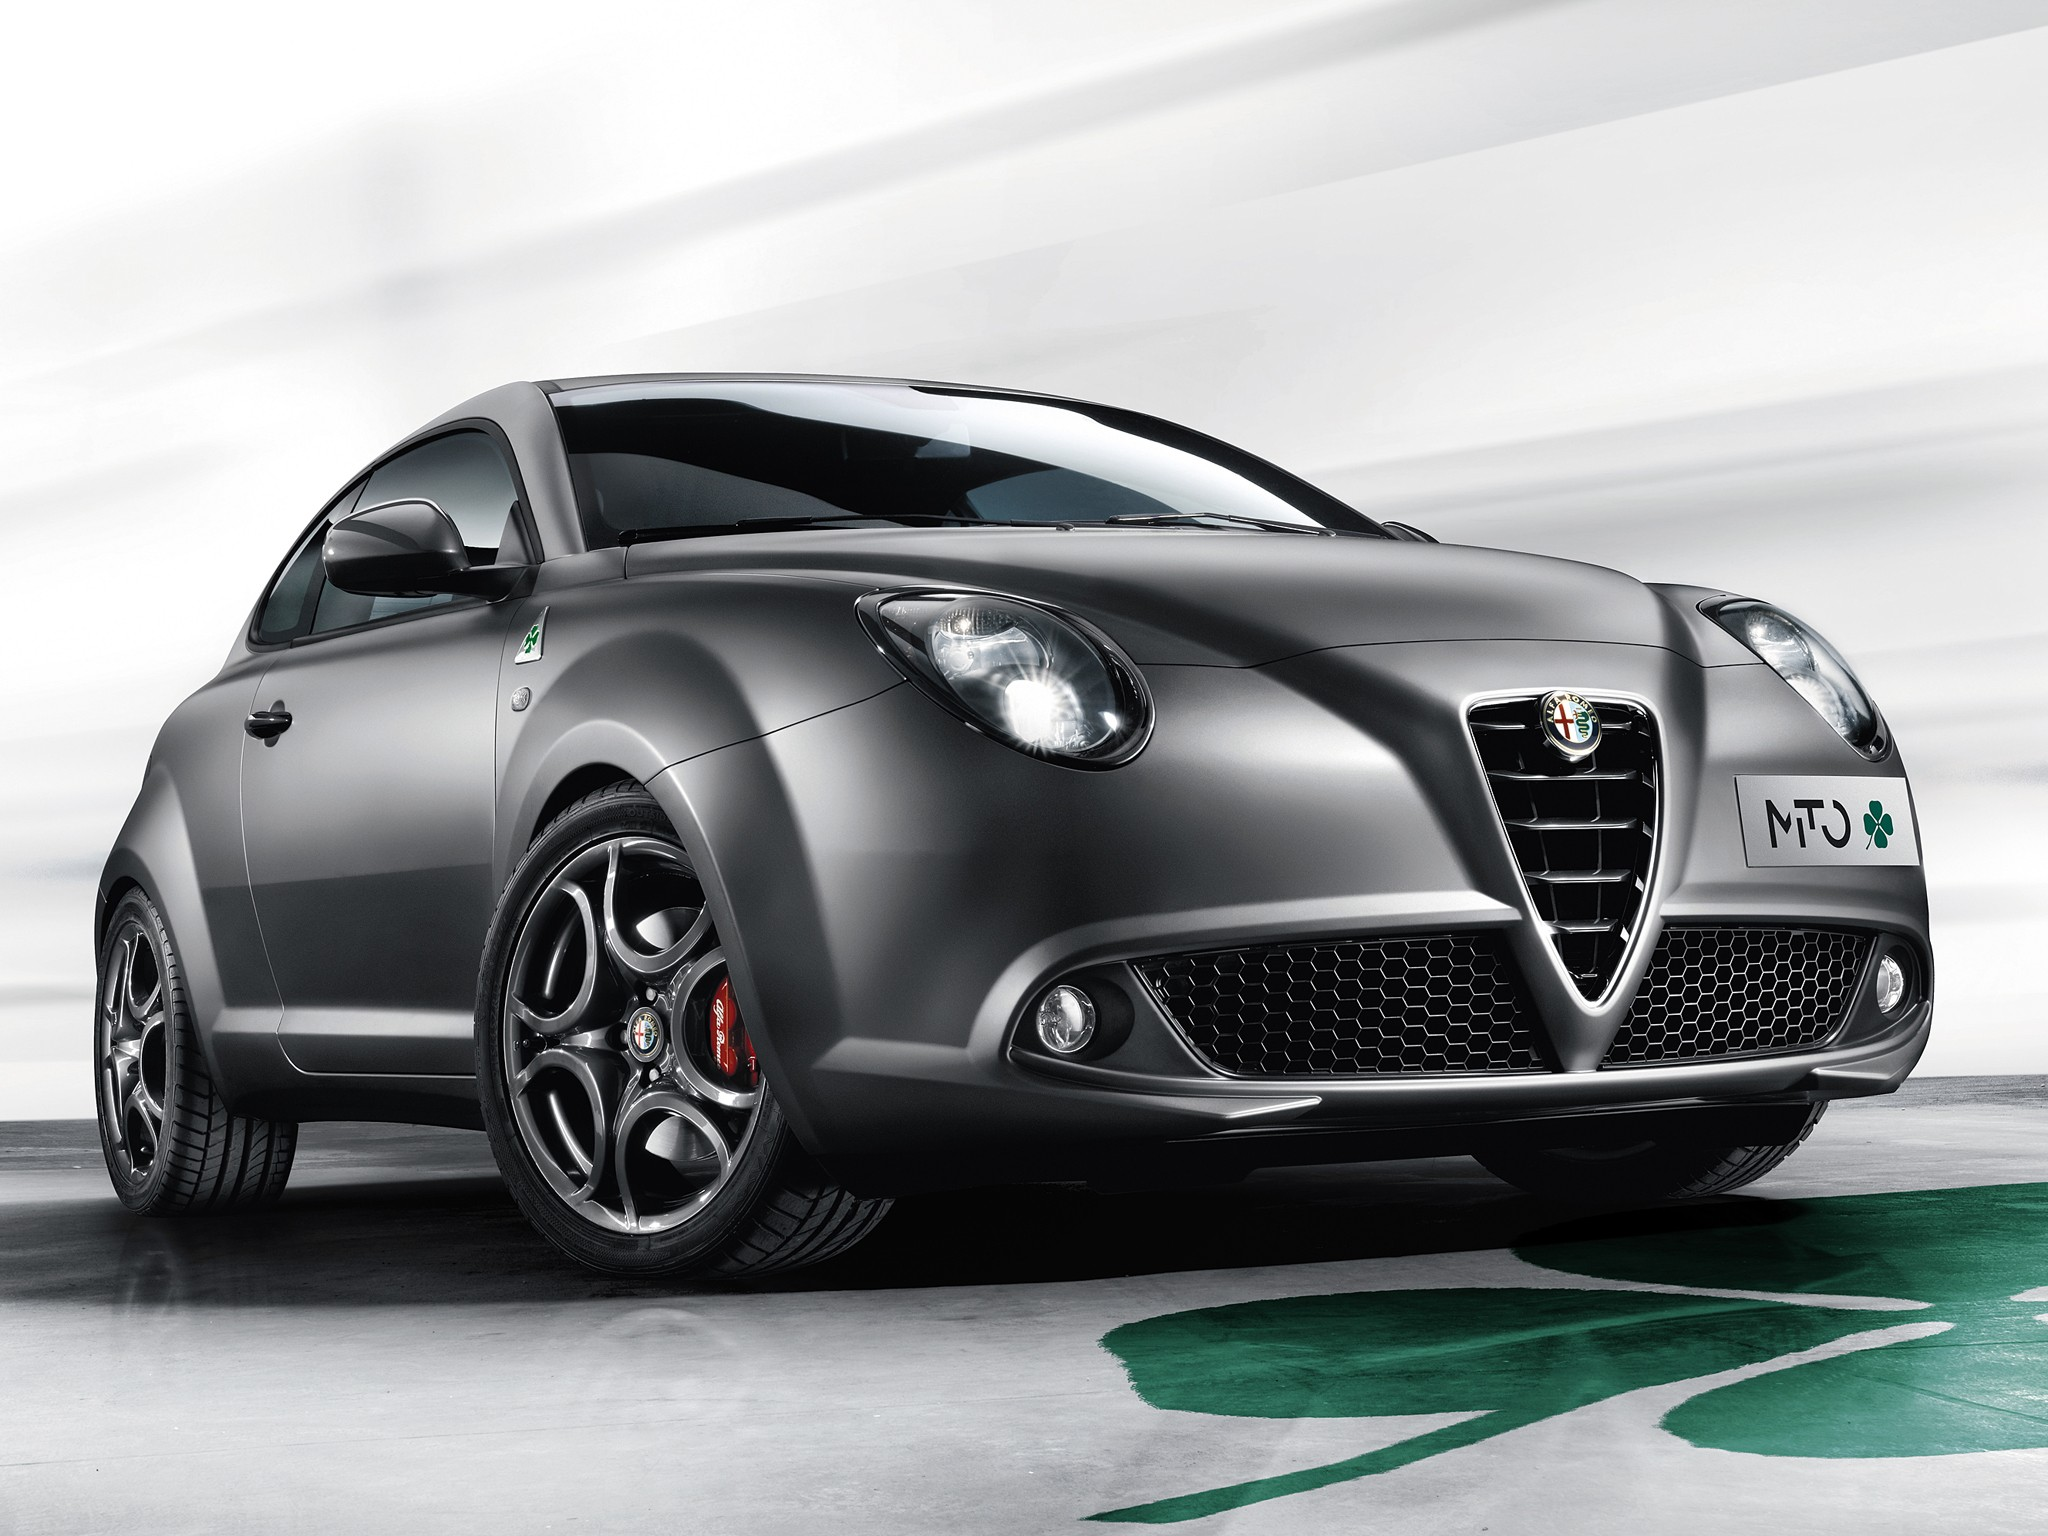 alfa romeo mito quadrifoglio verde specs 2009 2010 2011 2012 2013 autoevolution. Black Bedroom Furniture Sets. Home Design Ideas